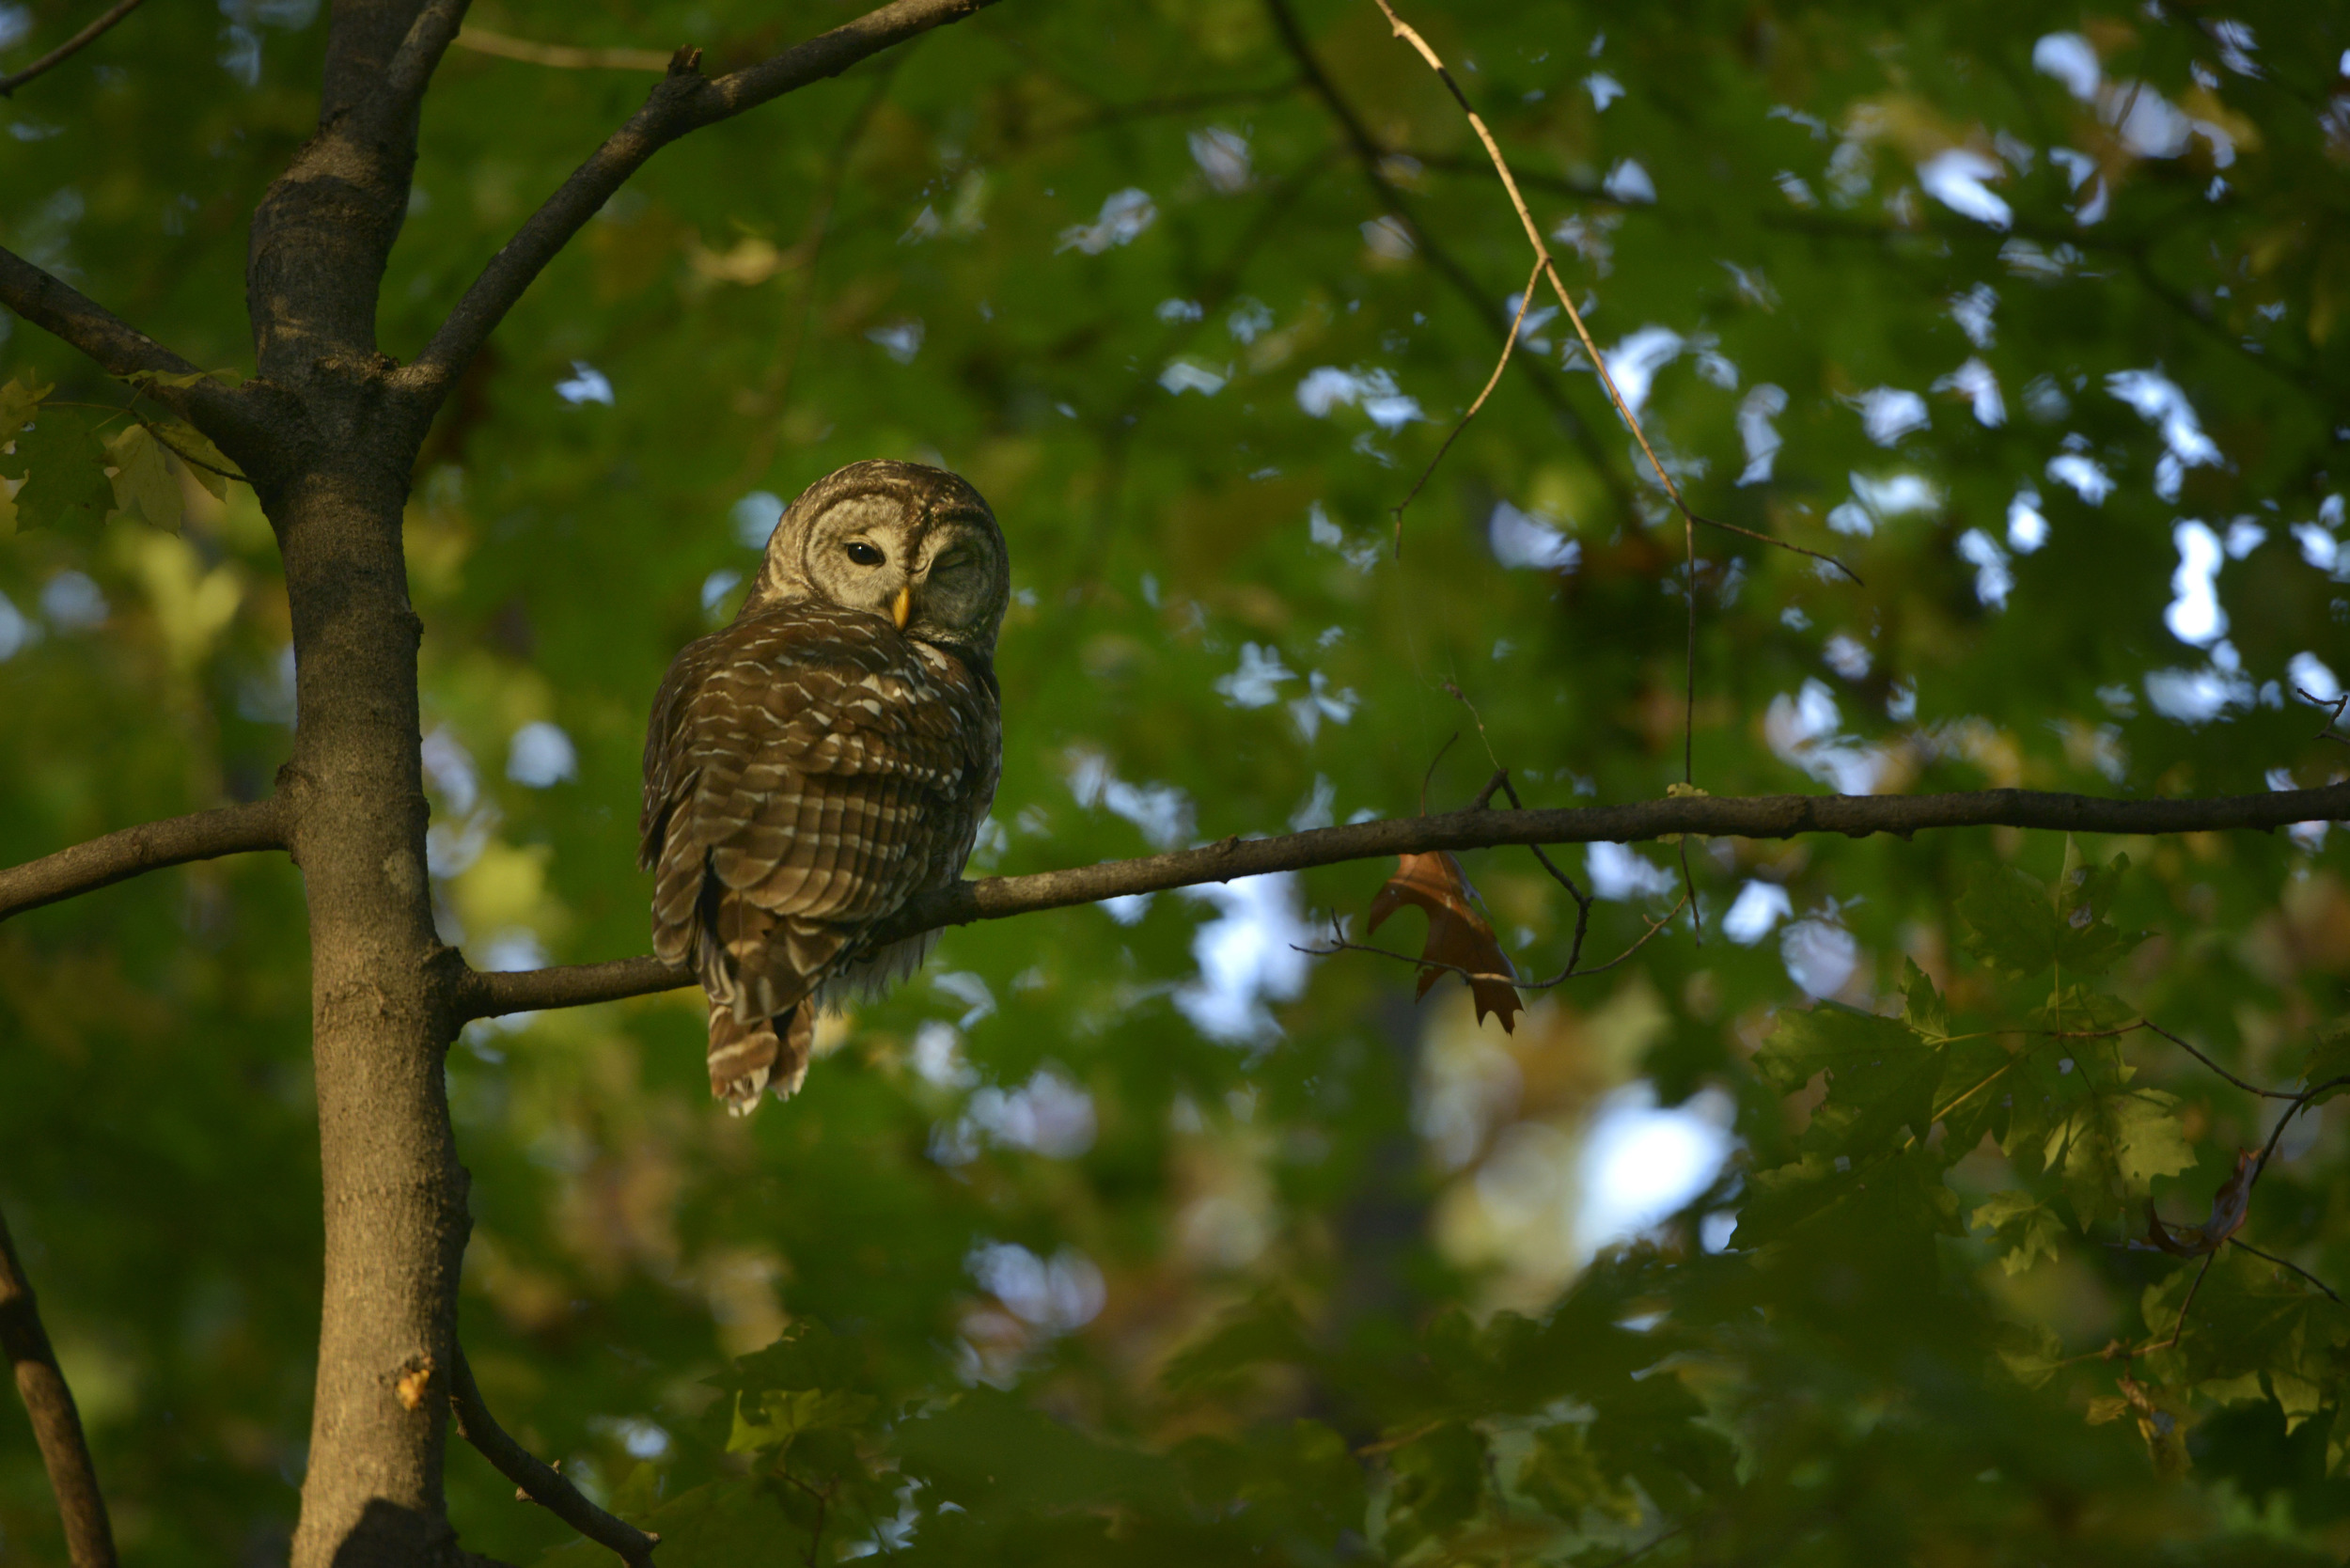 A barred owl on a branch as the sun sets at Percy Warner park in Nashville, Tenn.